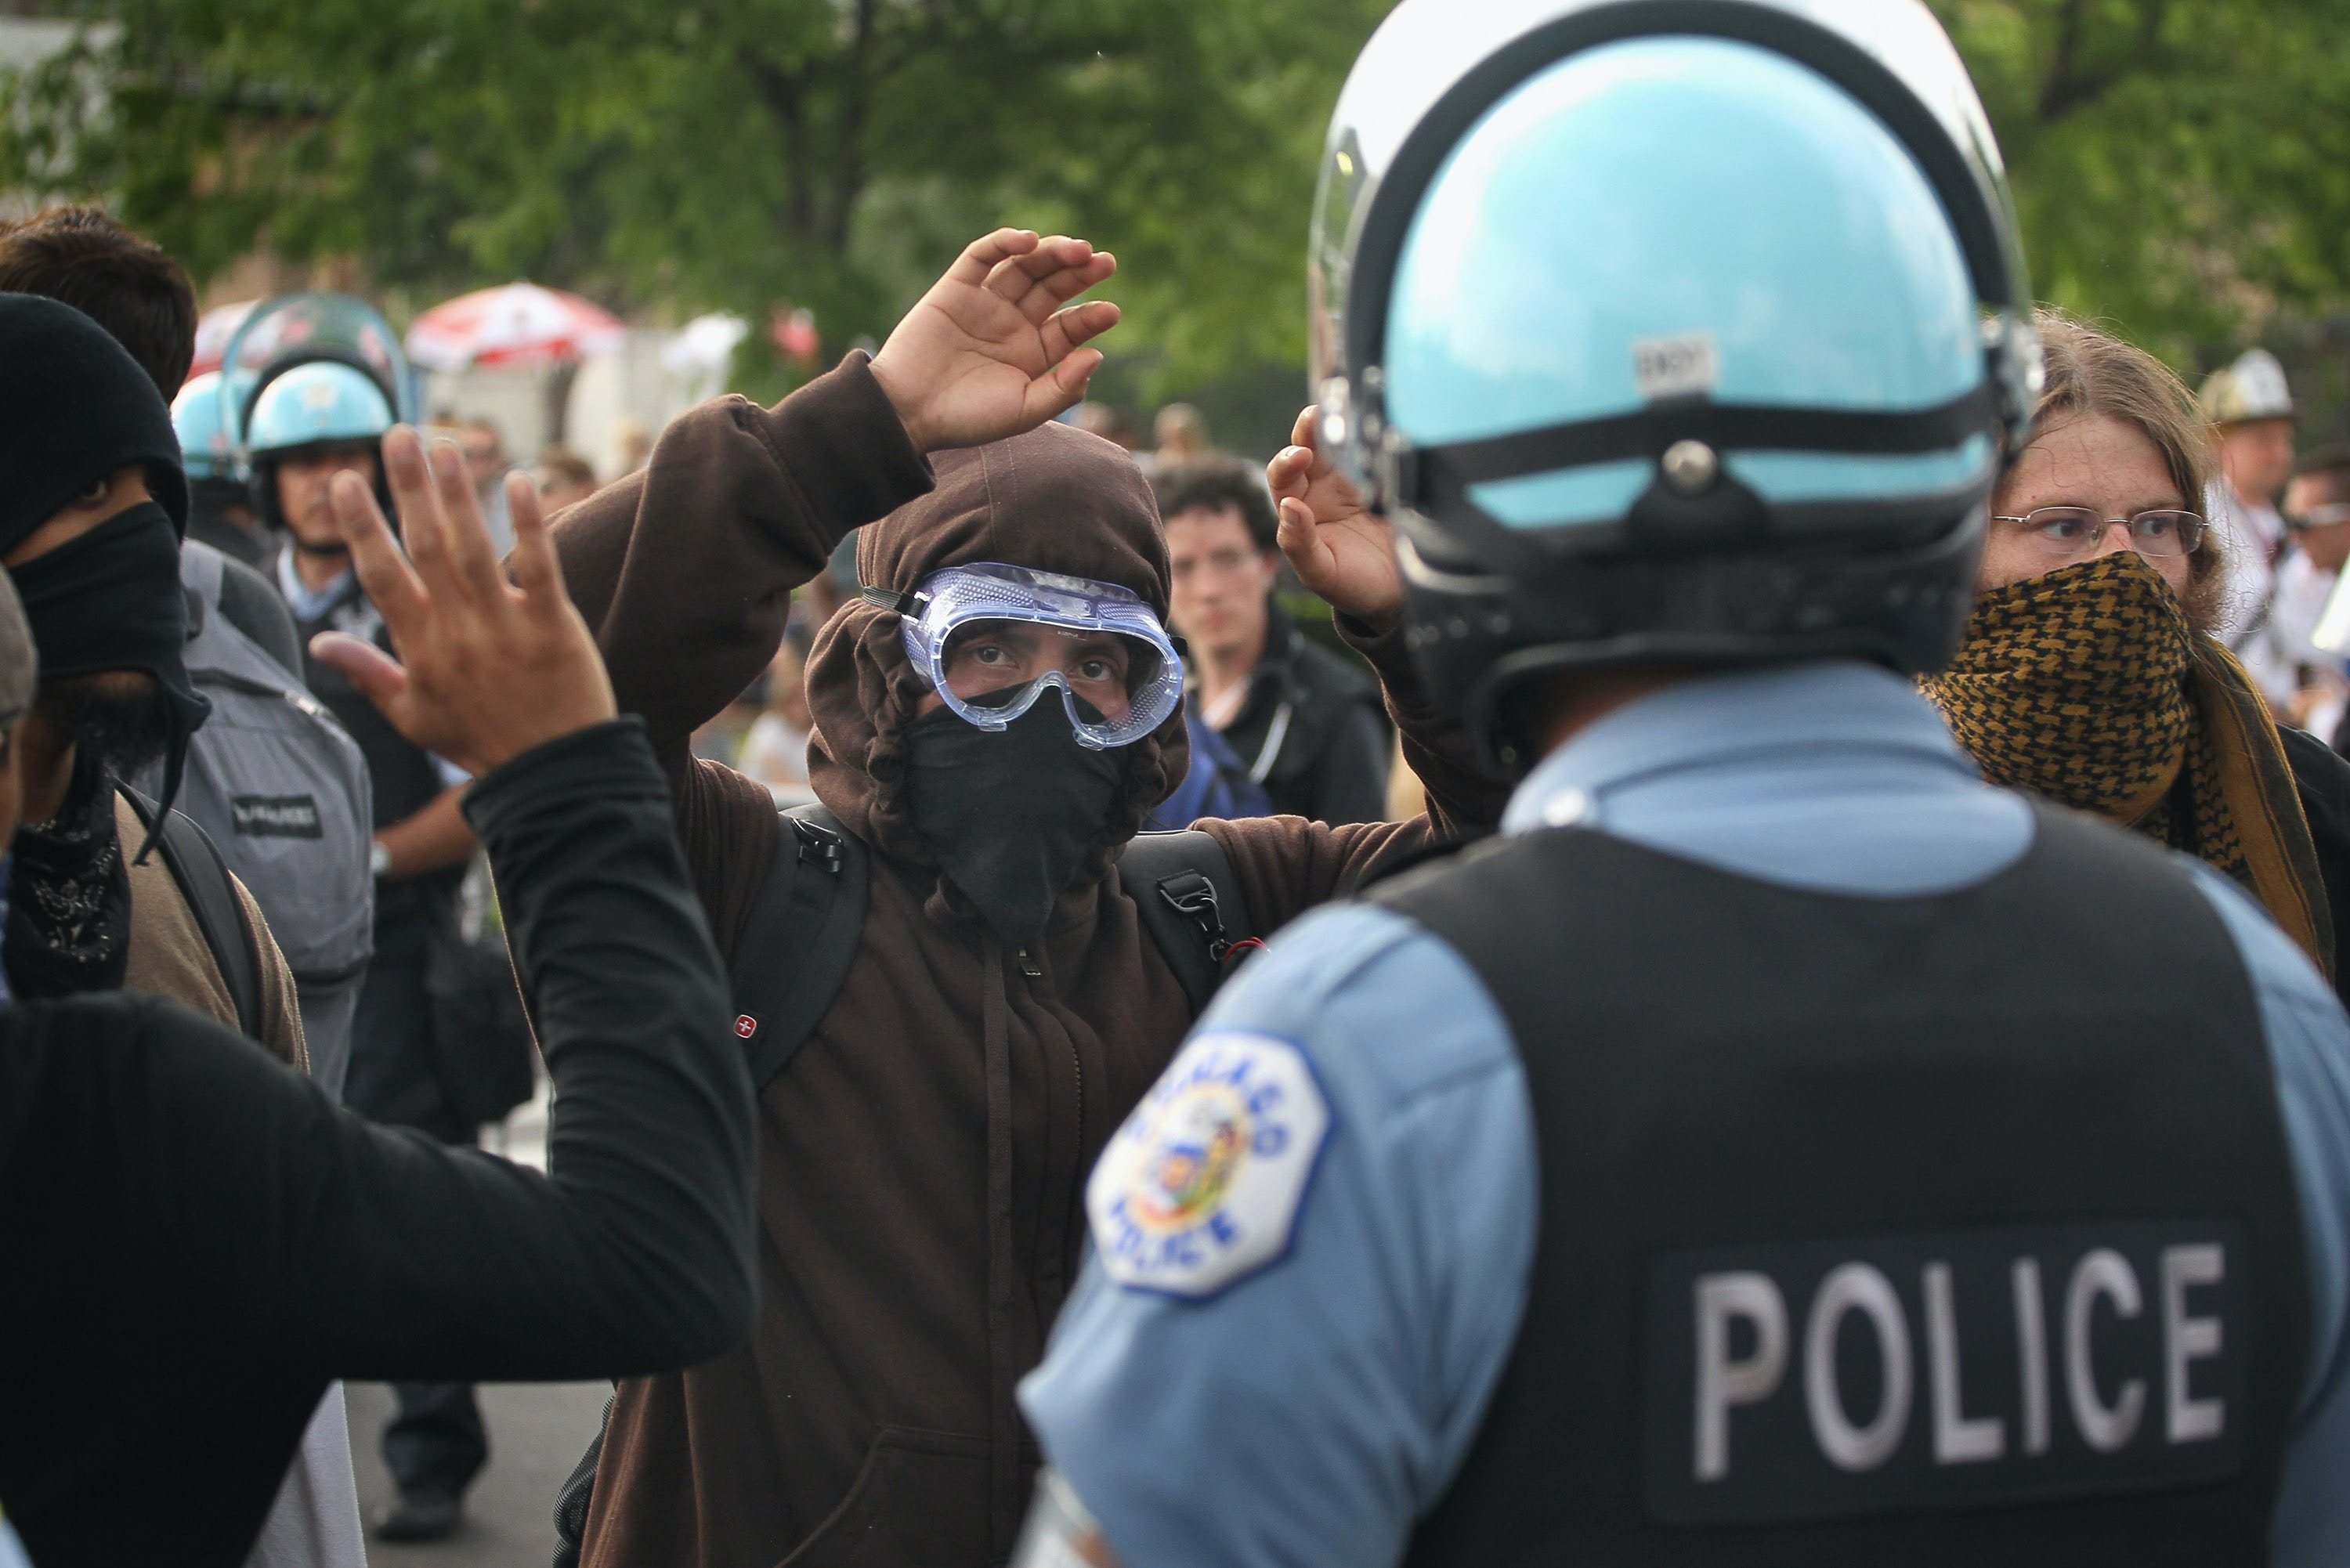 Demonstrators clash with police during a protest against the NATO Summit on May 20, 2012 in Chicago, Illinois.